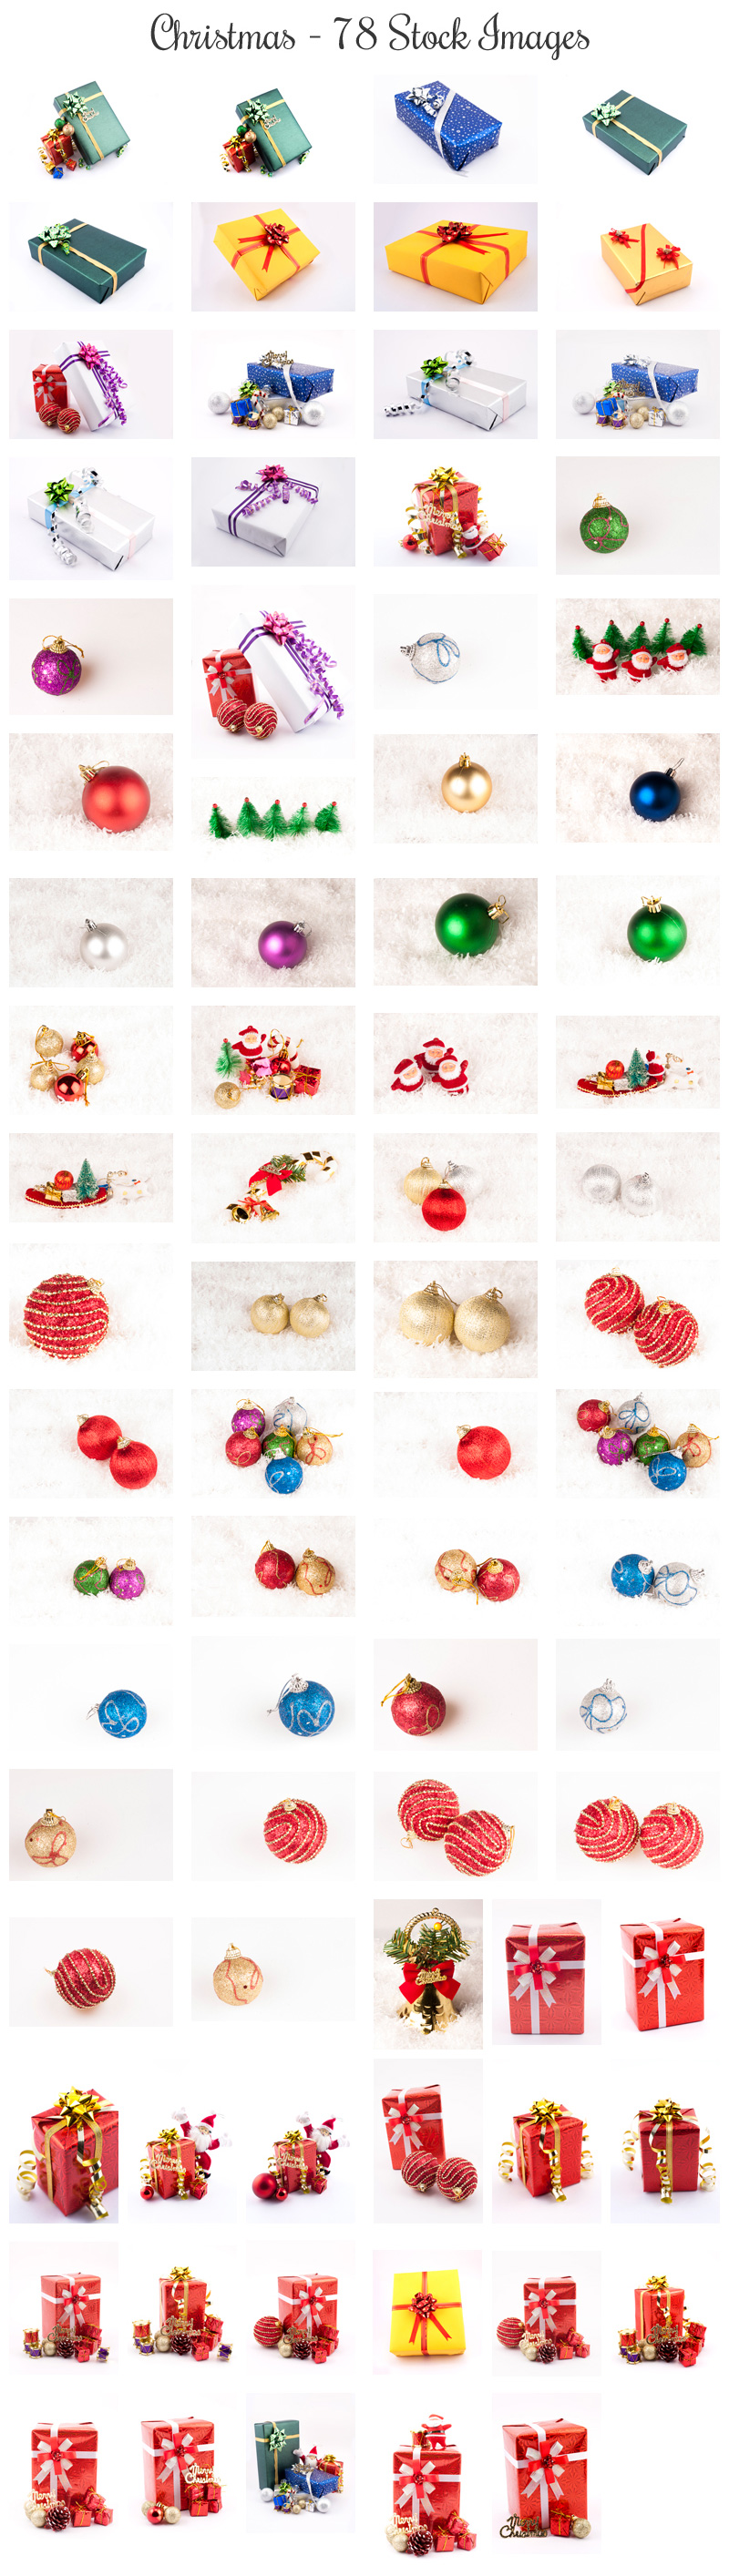 Christmas Stock Images Preview